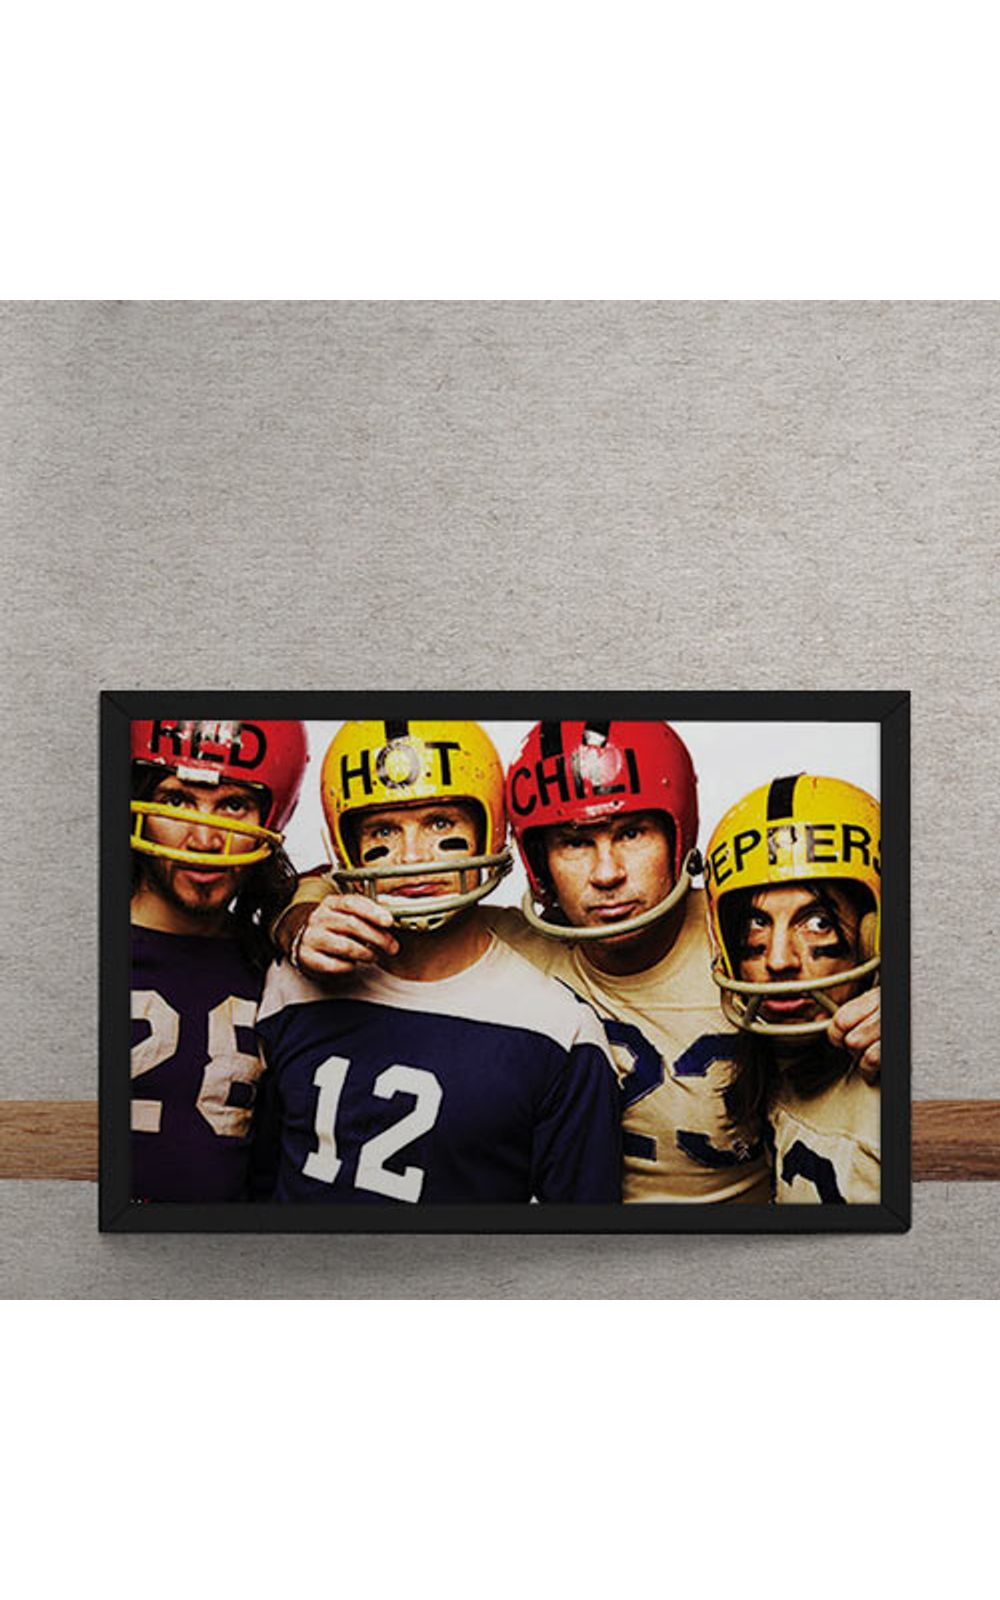 Foto 3 - Quadro Decorativo Red Hot Chili Peppers Futebol Americano